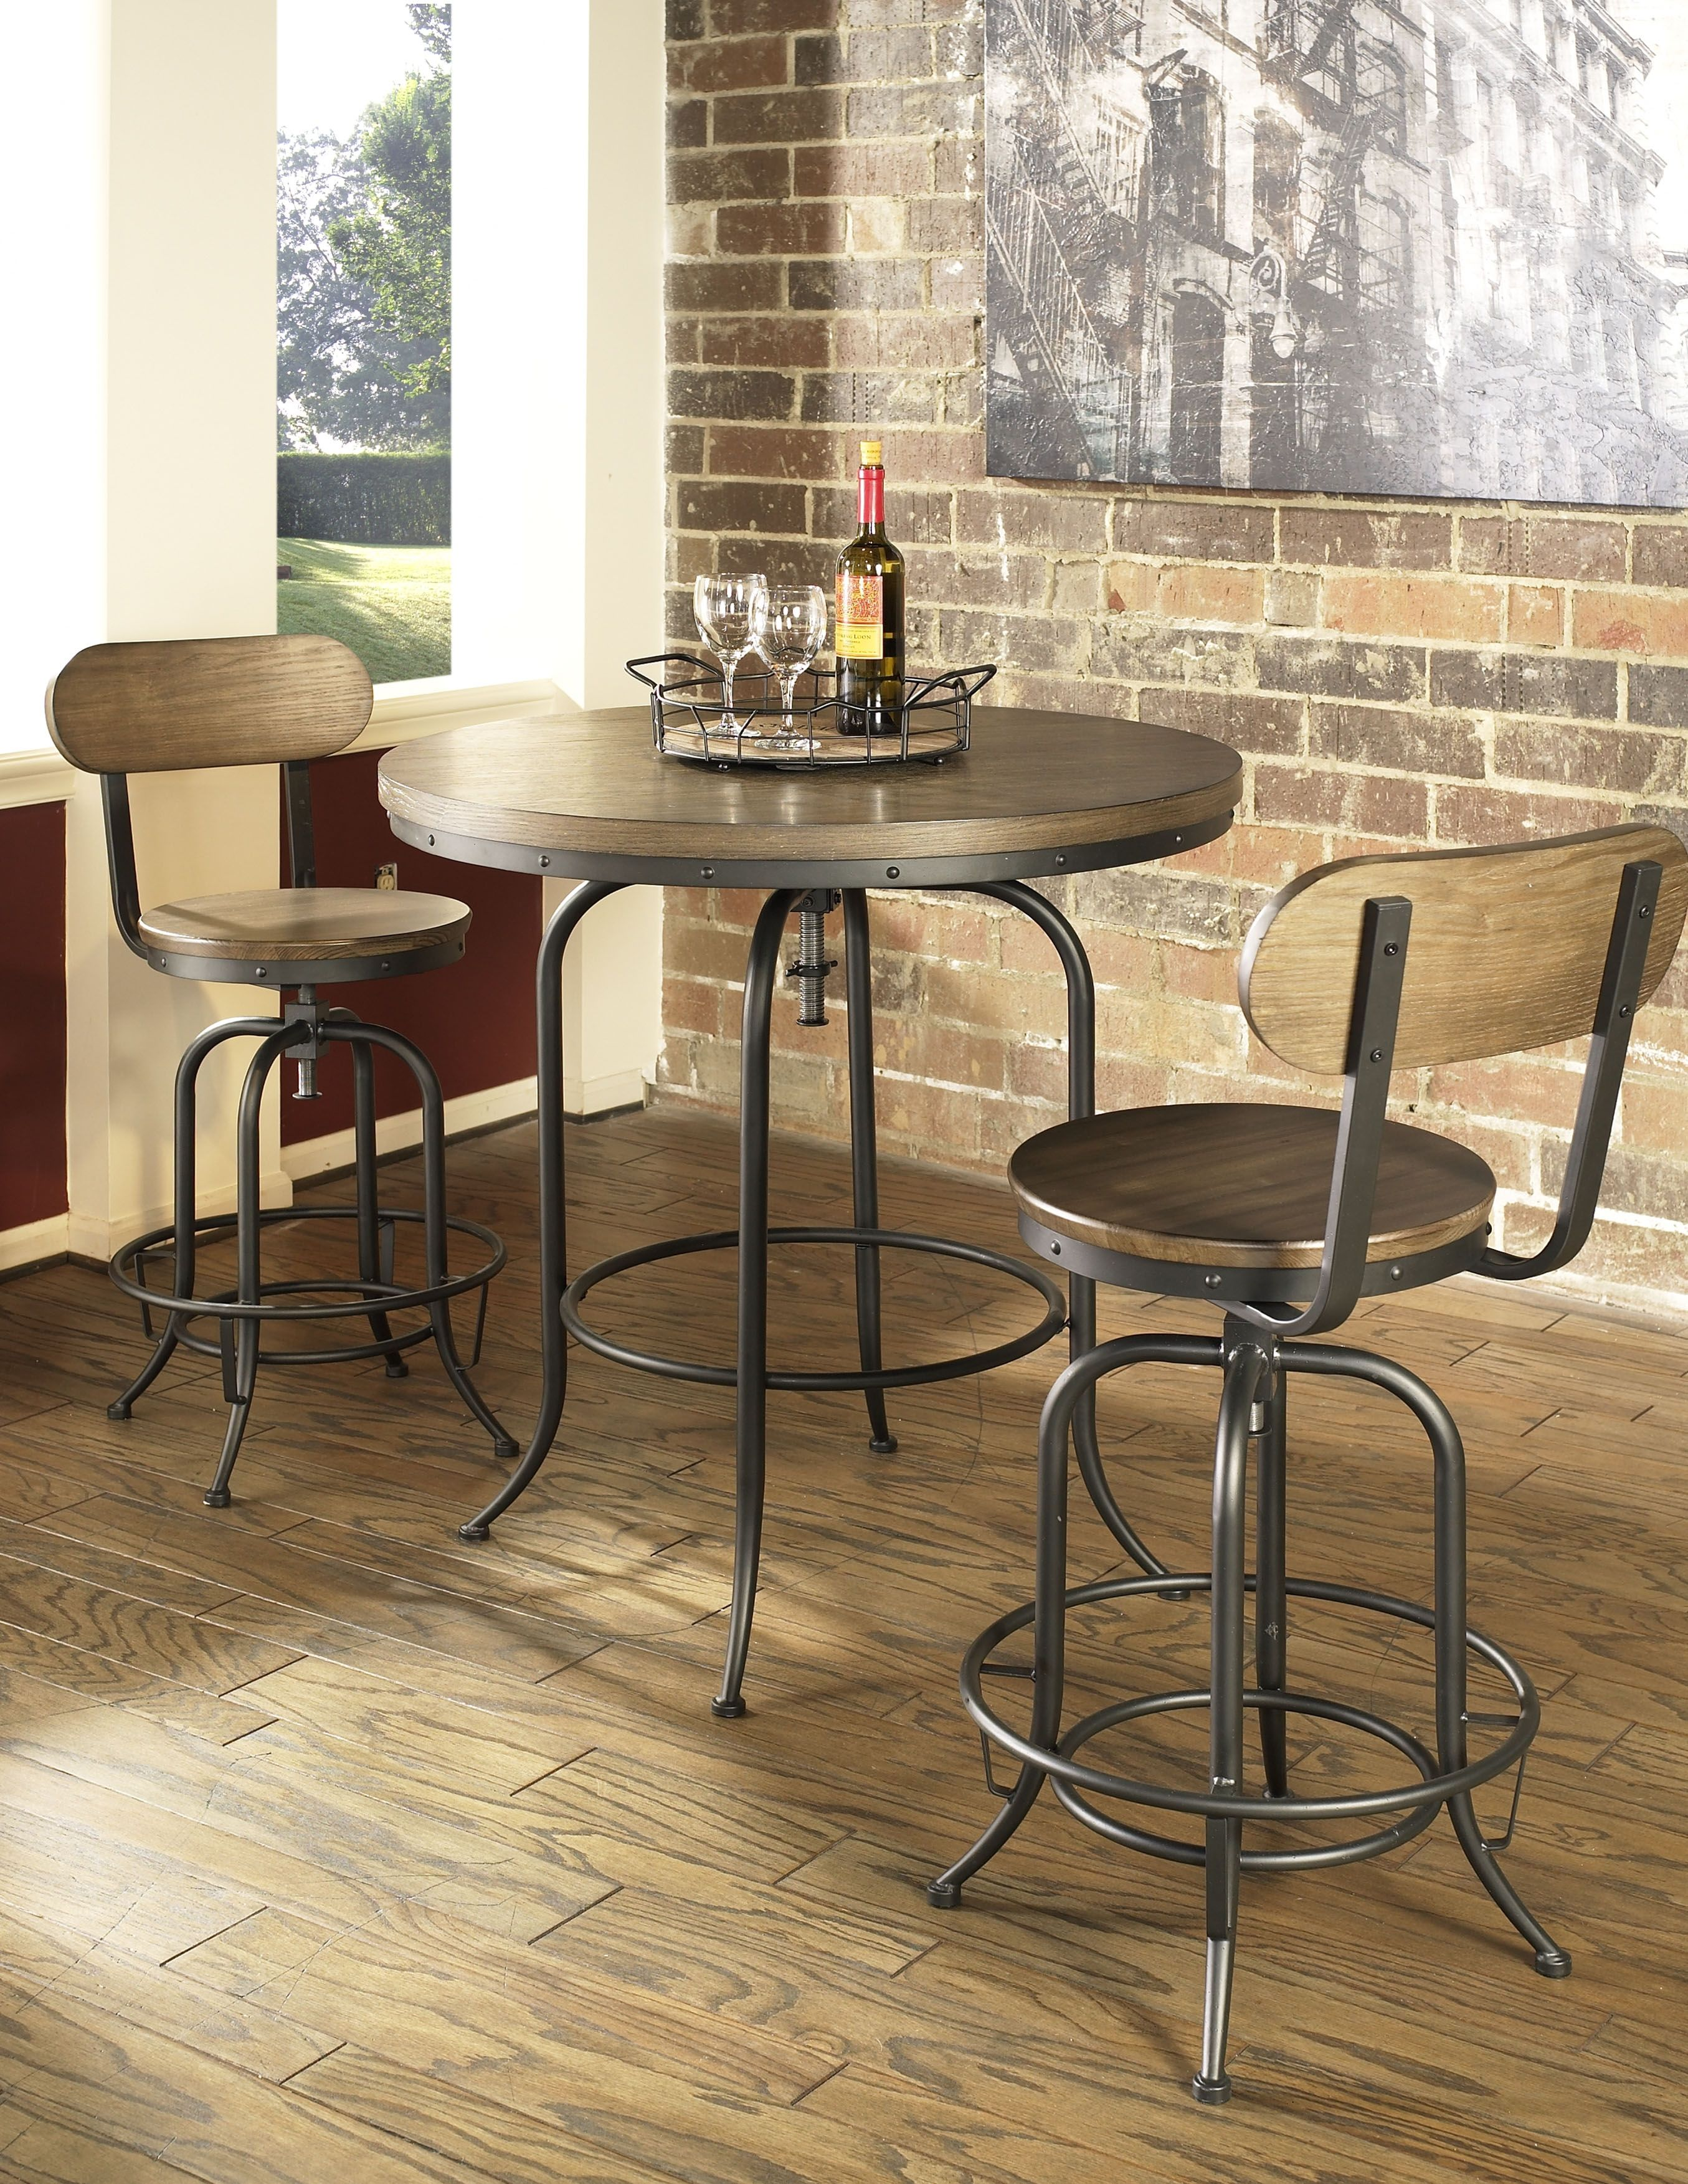 New Castle Round Bar Table Round Bar Table Bar Table Rustic Round Table